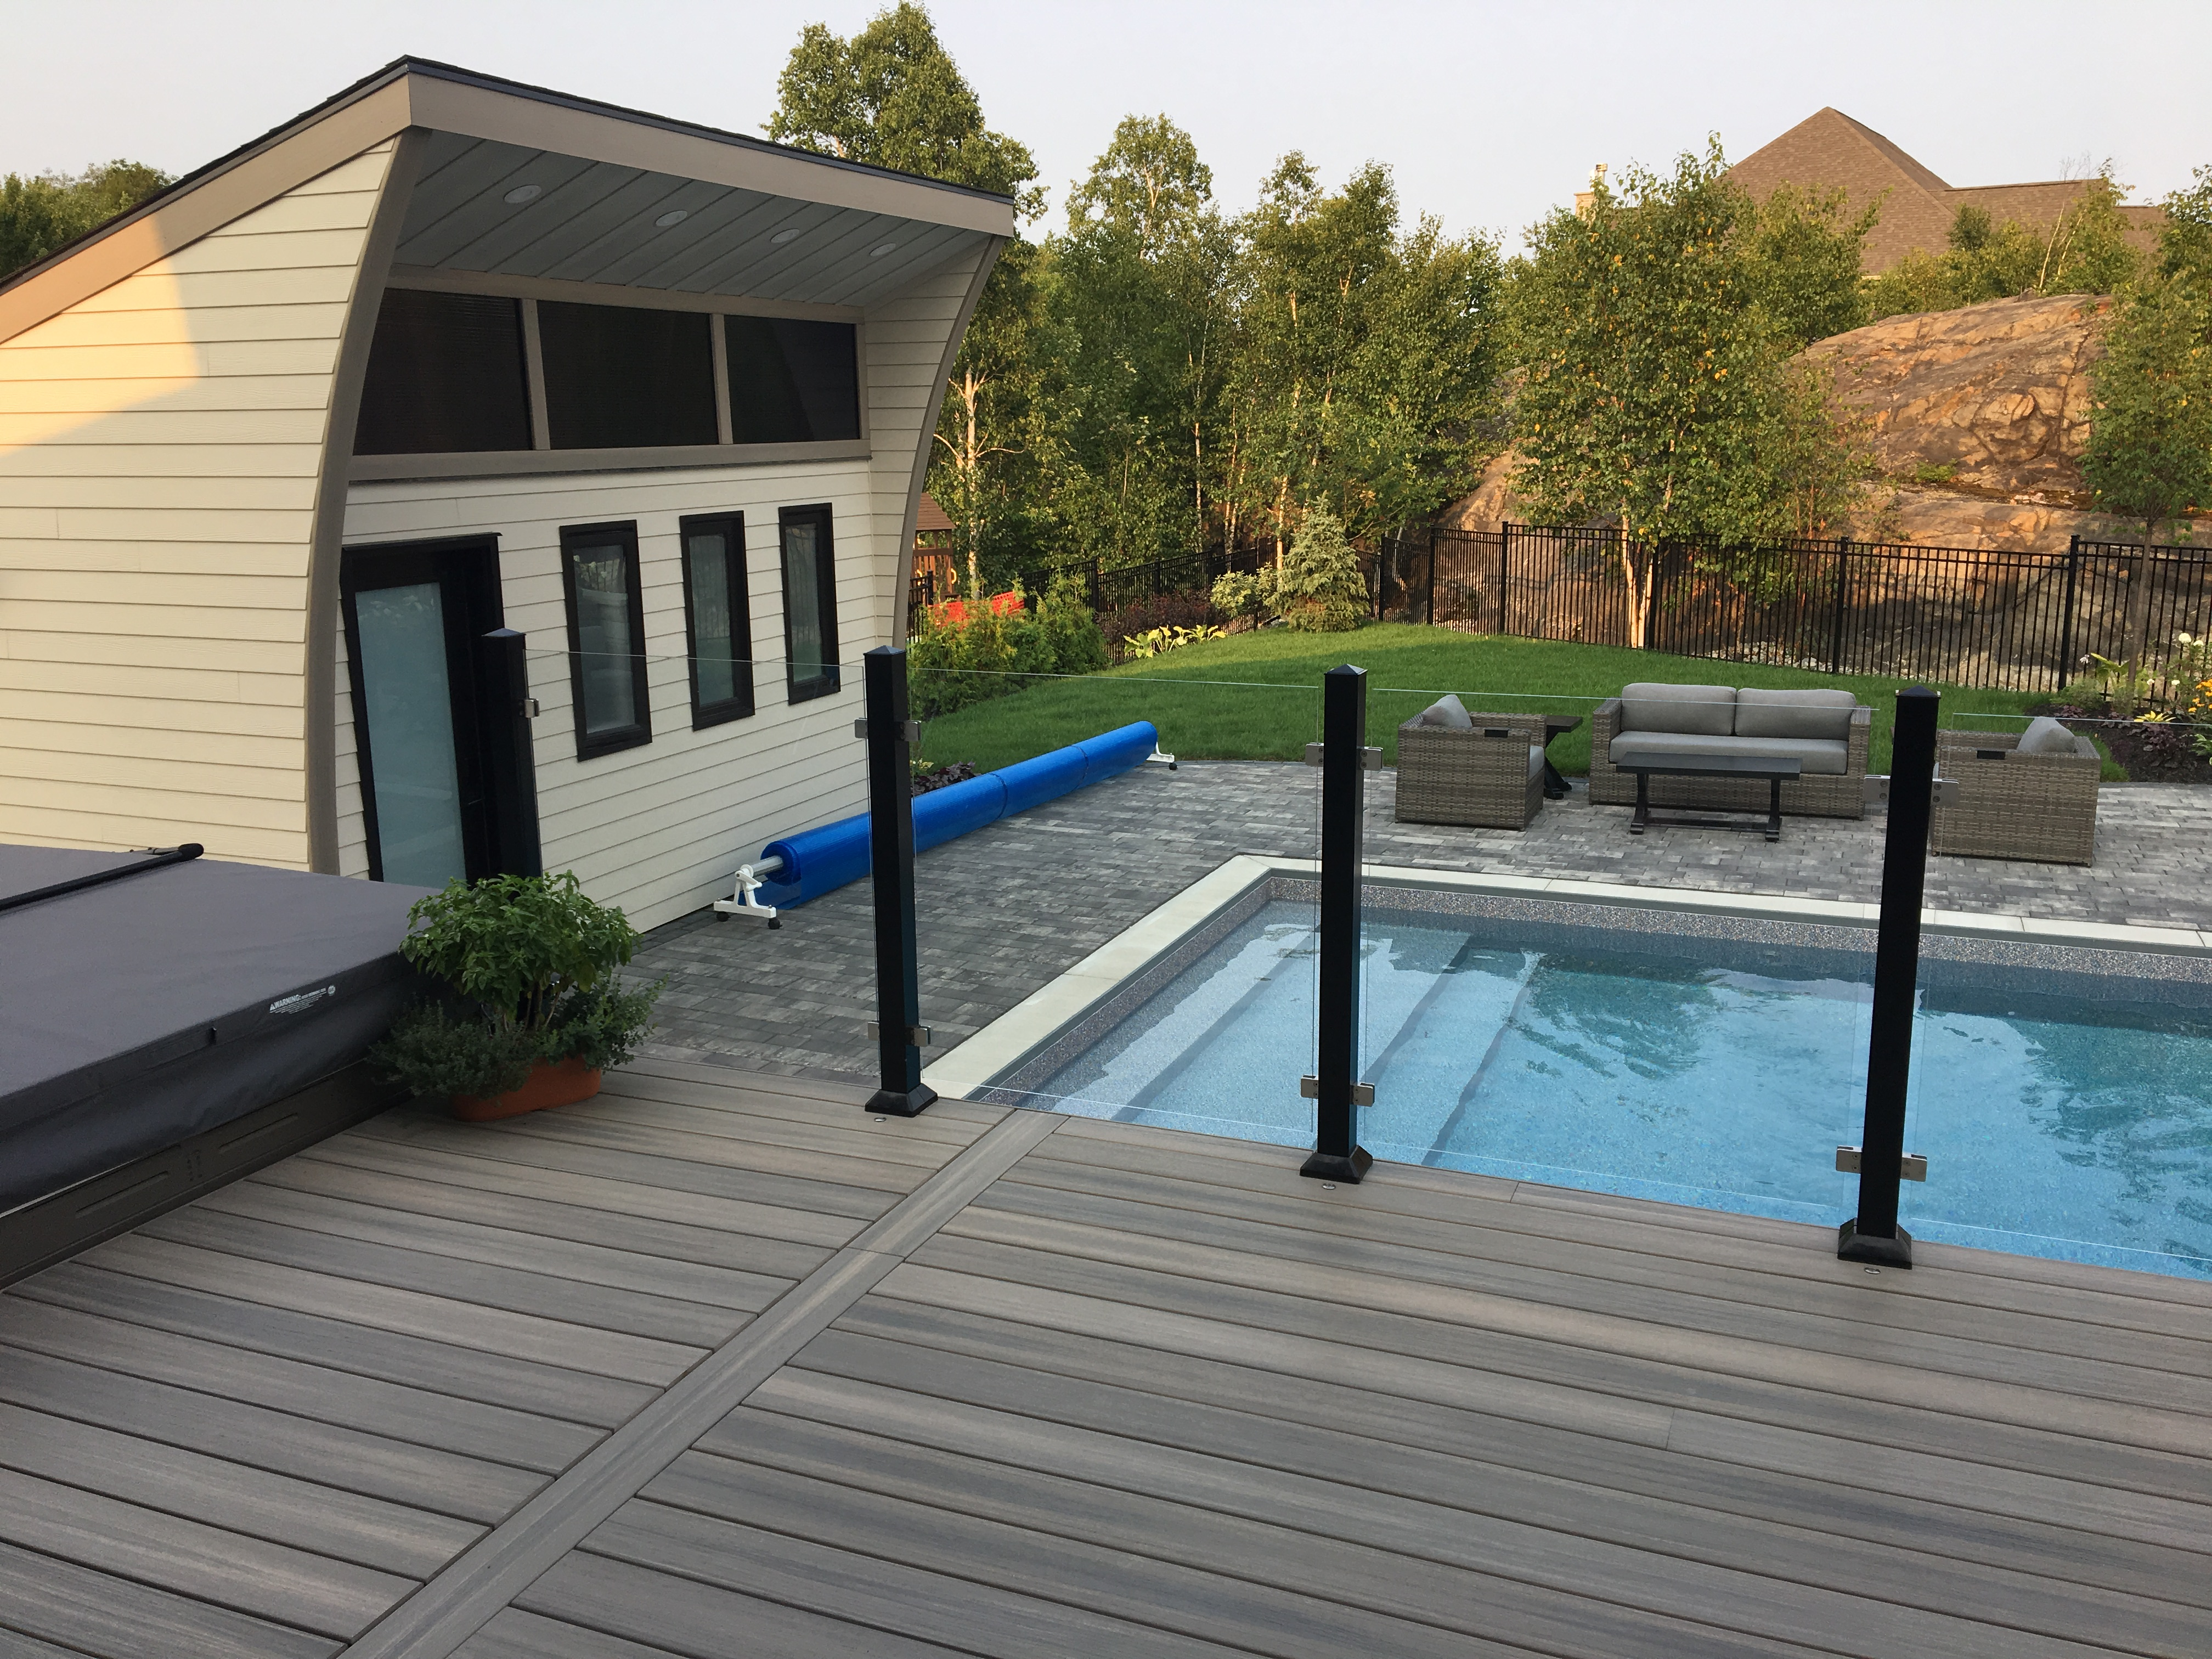 Deck view - pool house